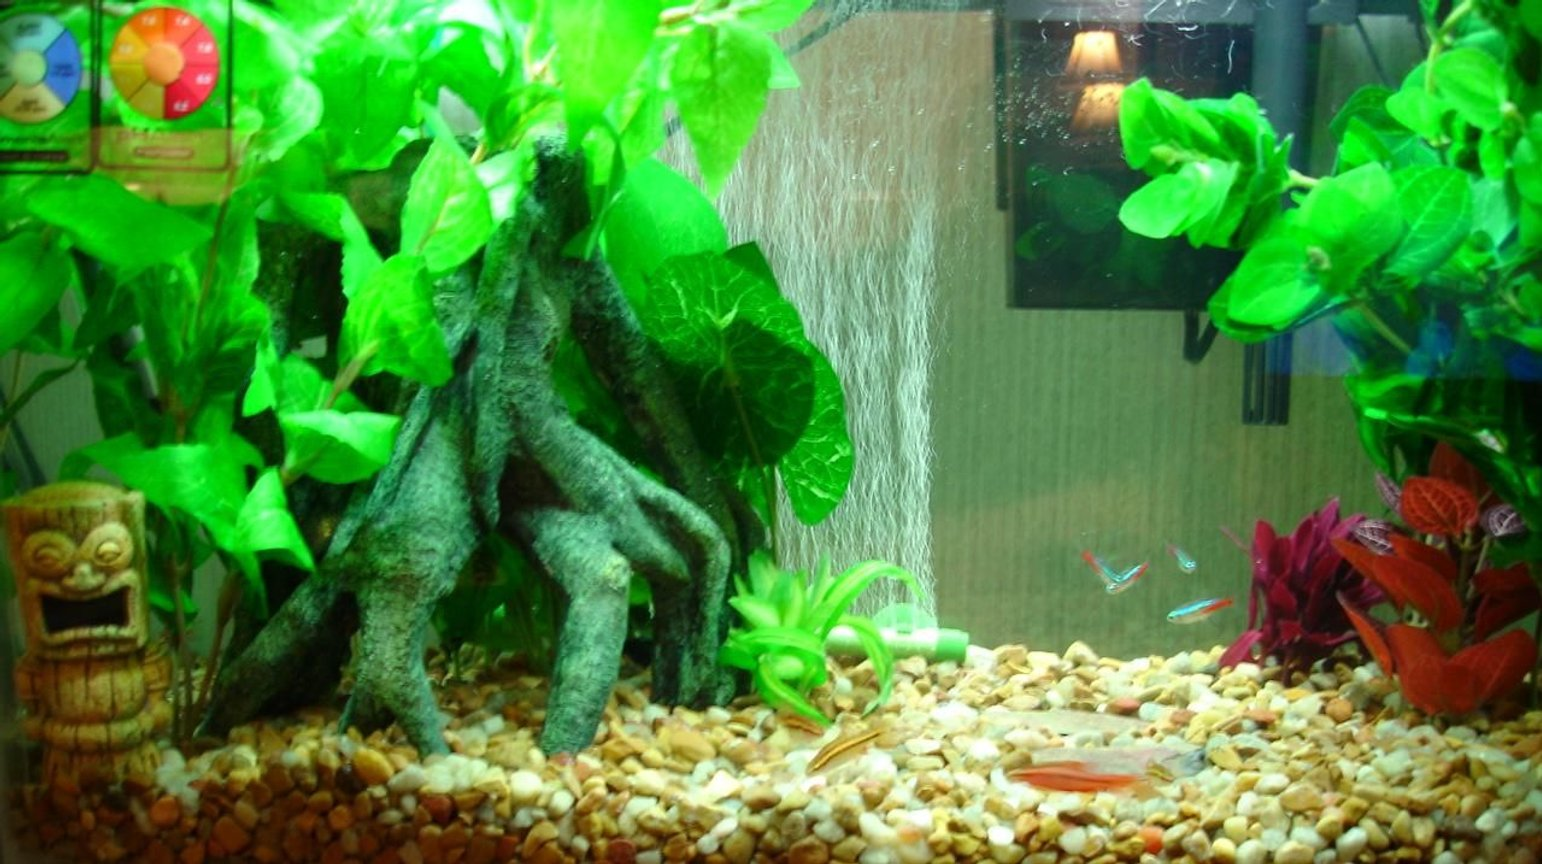 freshwater fish - paracheirodon innesi - neon tetra jumbo stocking in 10 gallons tank - 10 gallon Aqua culture tank,hood,filter,pump. sub. heater bubble wall. All decor if fake. Silk plants and top fin stump. 5 Neon's , 5 Cherry barbs and 2 Cory's. Will be adding 3 or 4 Cheery or Ghost Shrimp later. To help with algae.